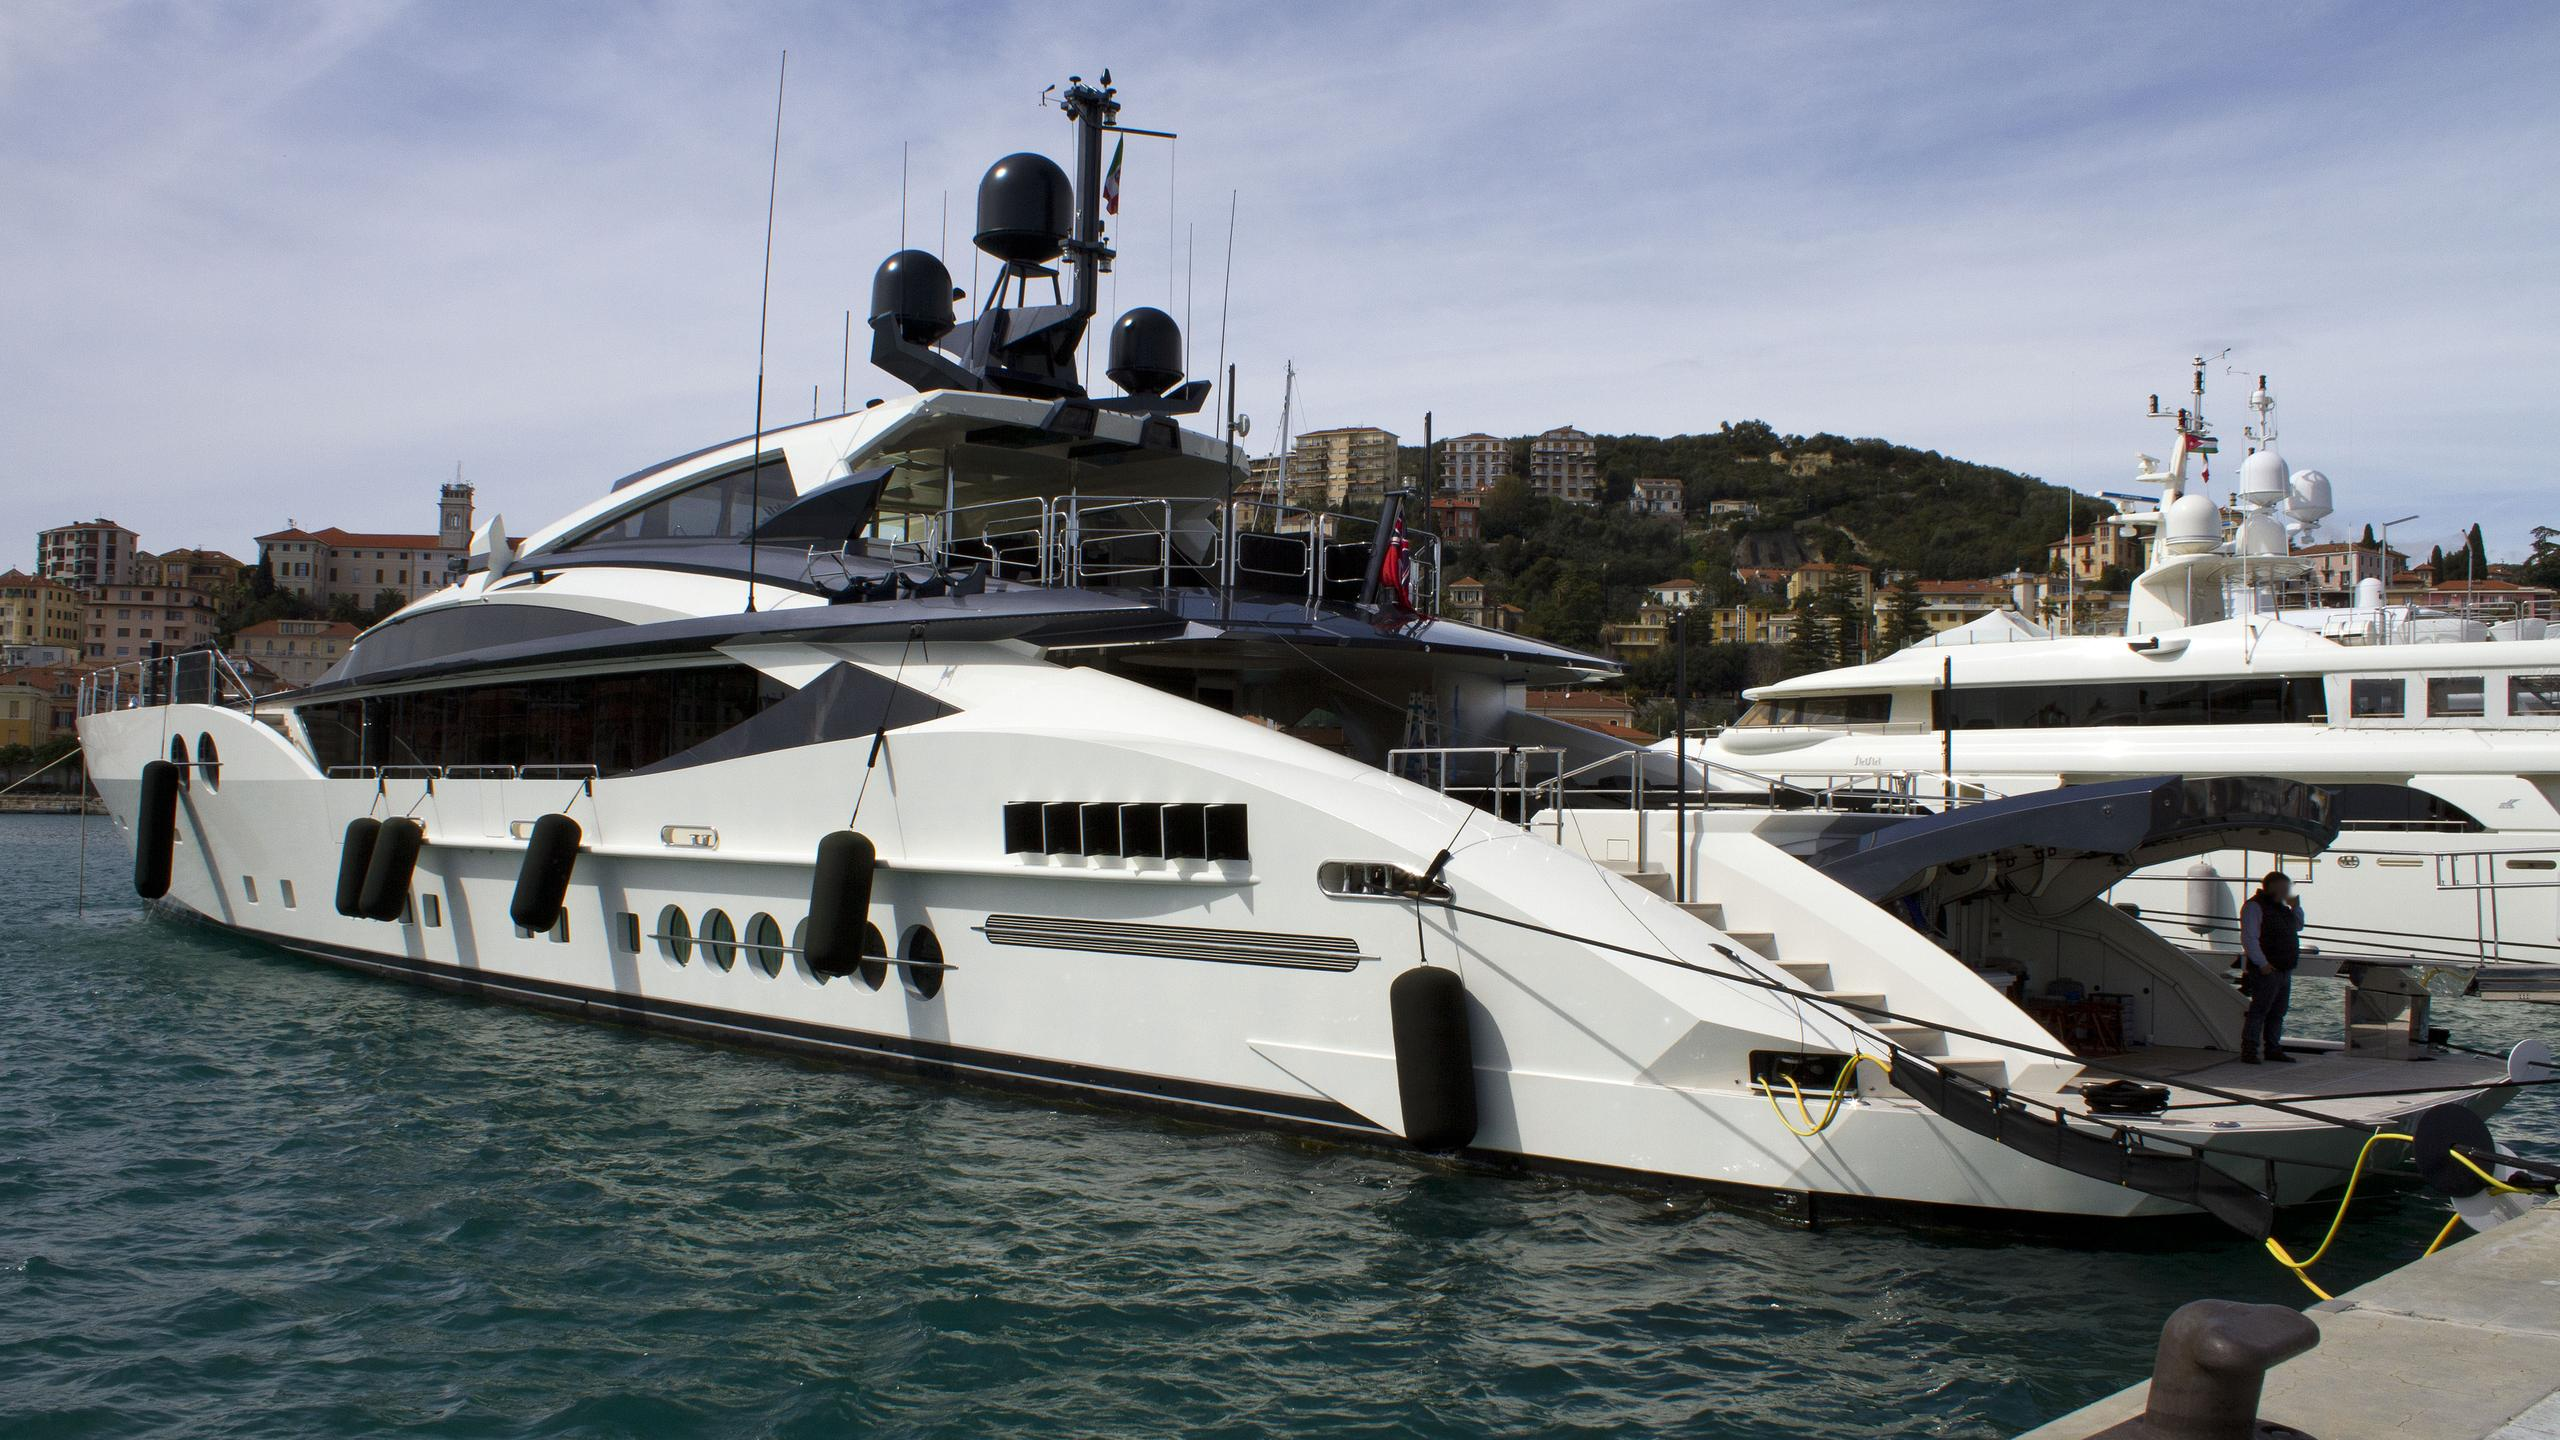 bliss-motor-yacht-palmer-johnson-2014-52m-half-stern